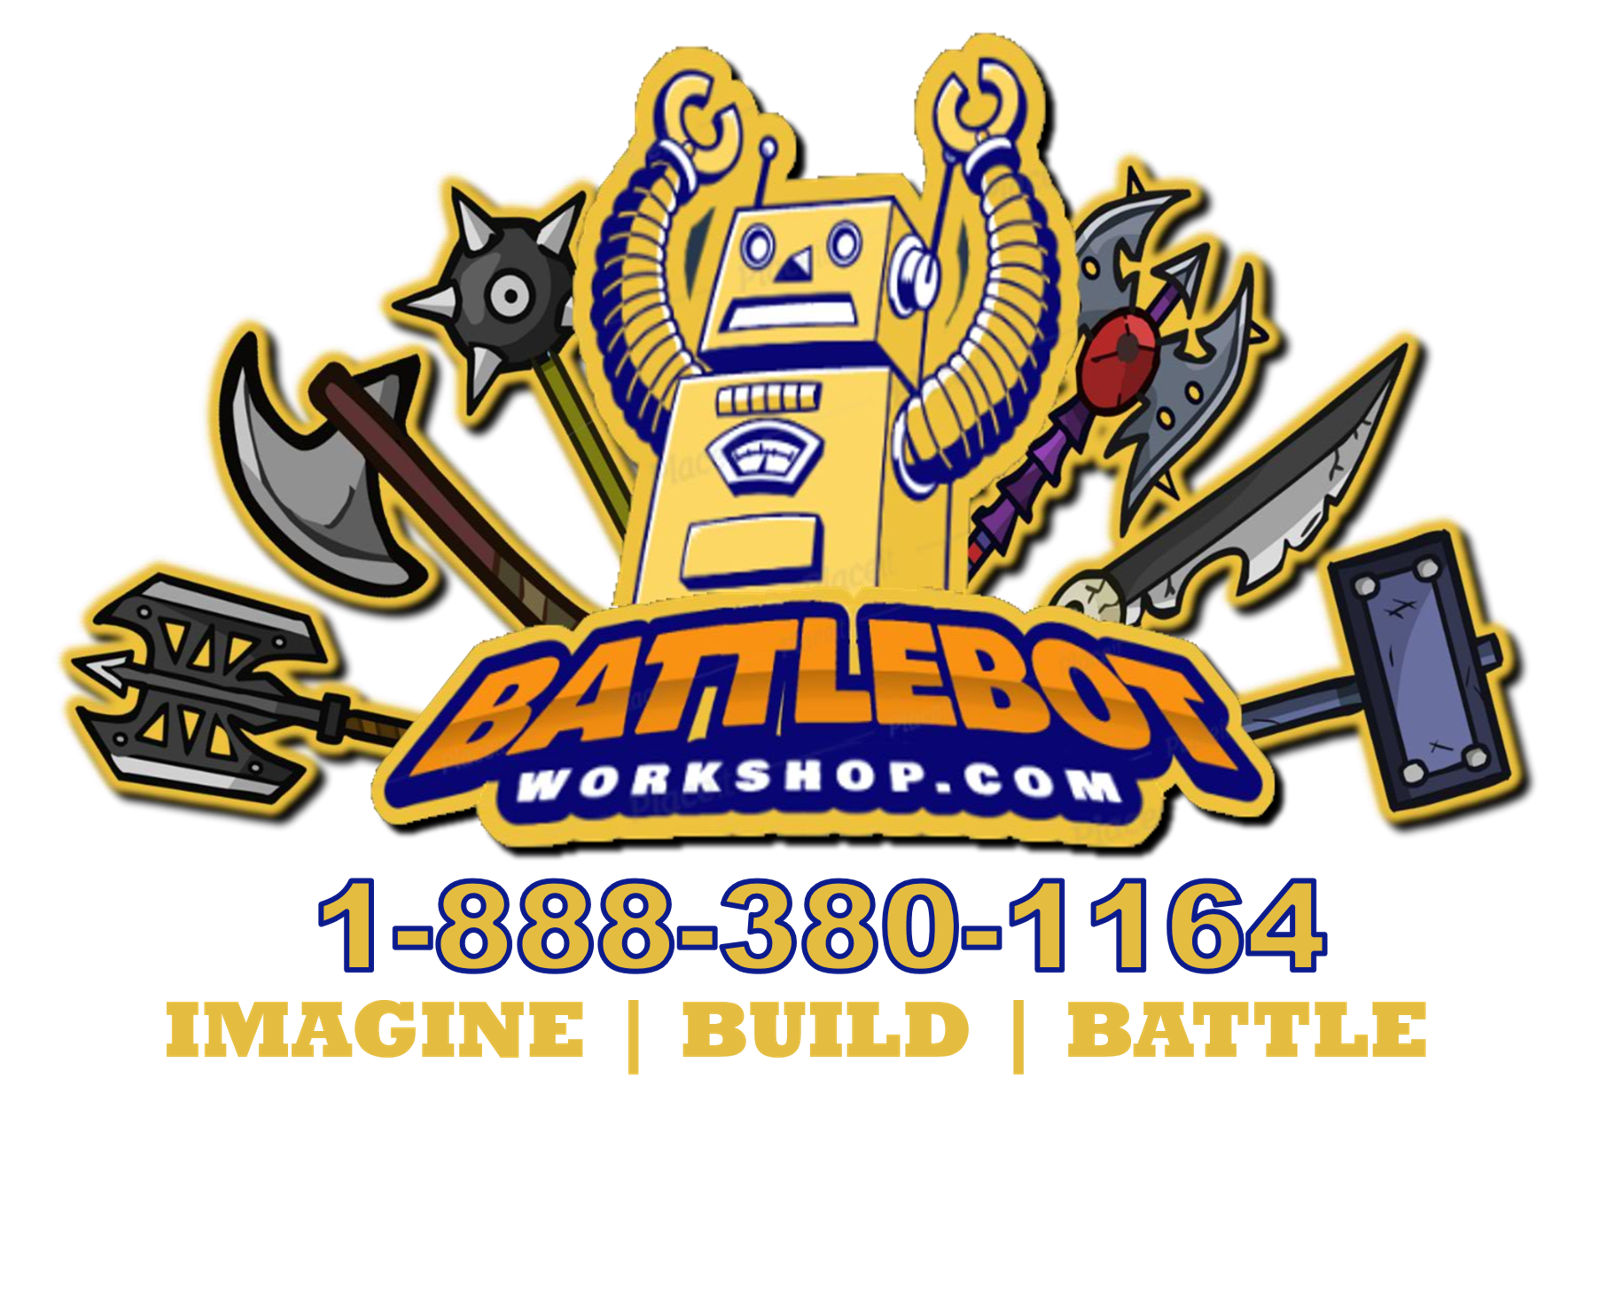 BattleBot Workshop